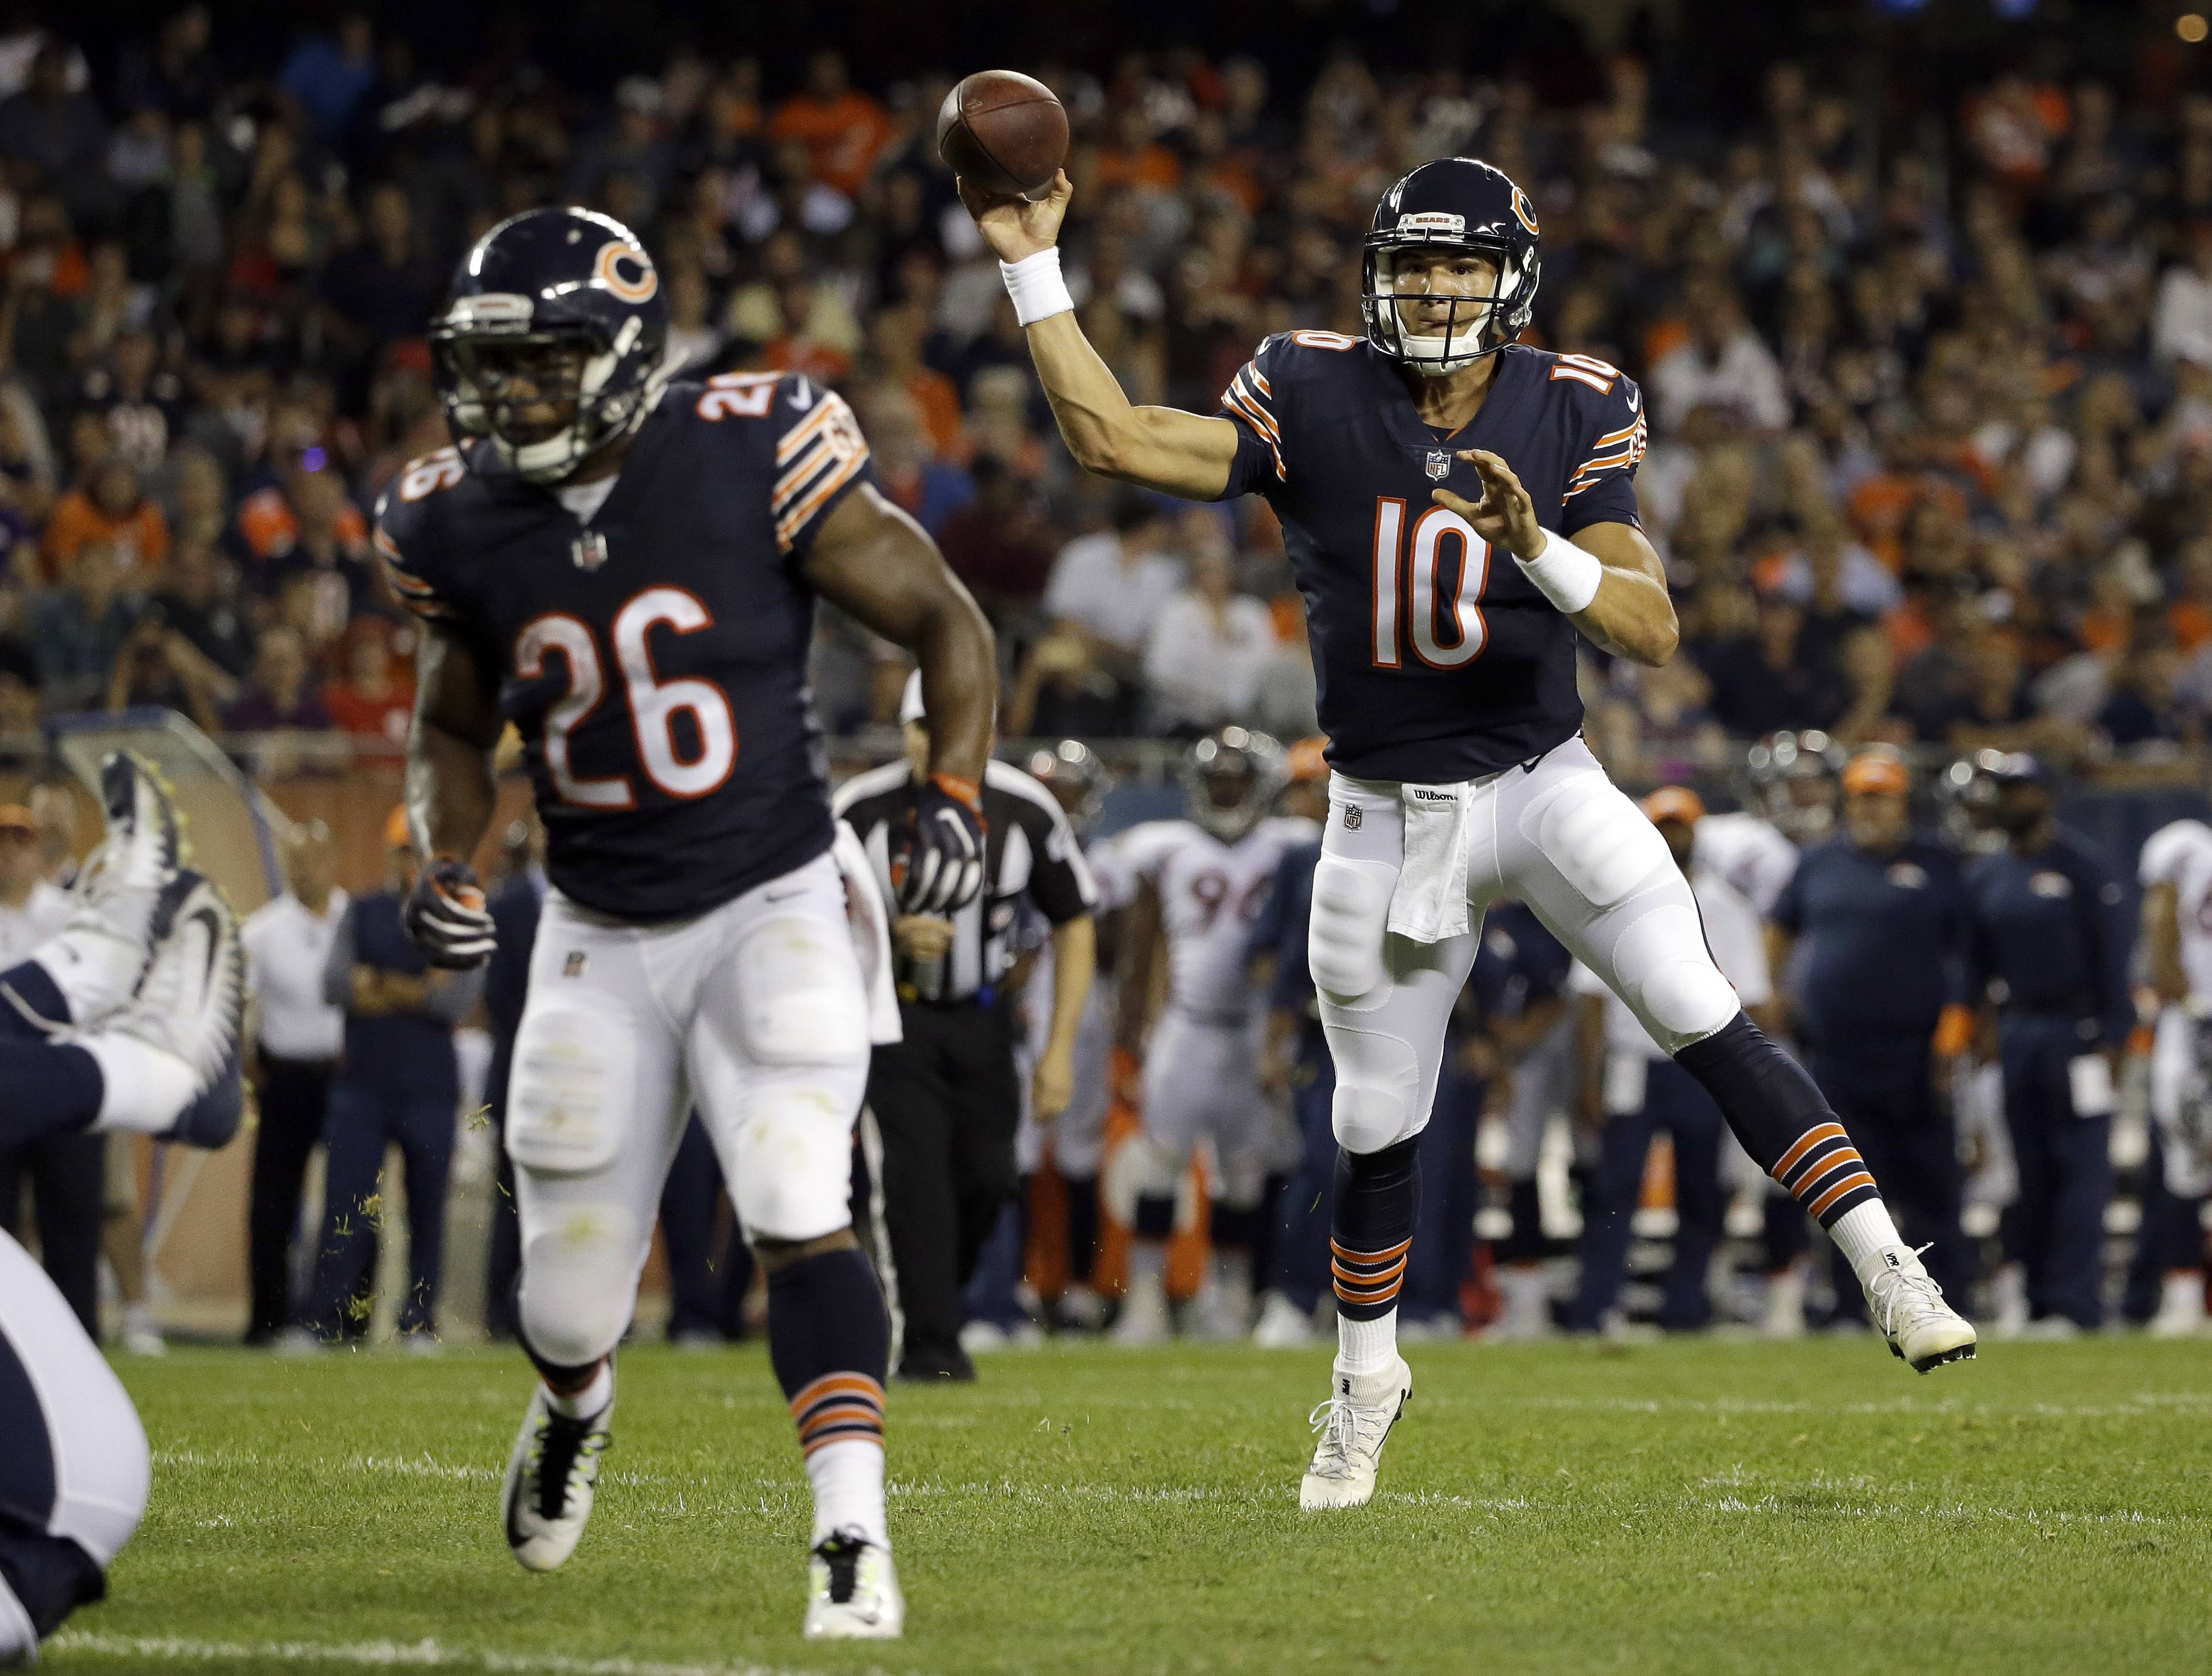 Chicago Bears quarterback Mitchell Trubisky (10) throws a touchdown pass to wide receiver Victor Cruz (80) during the first half of an NFL preseason football game against the Denver Broncos, Thursday, Aug. 10, 2017, in Chicago.